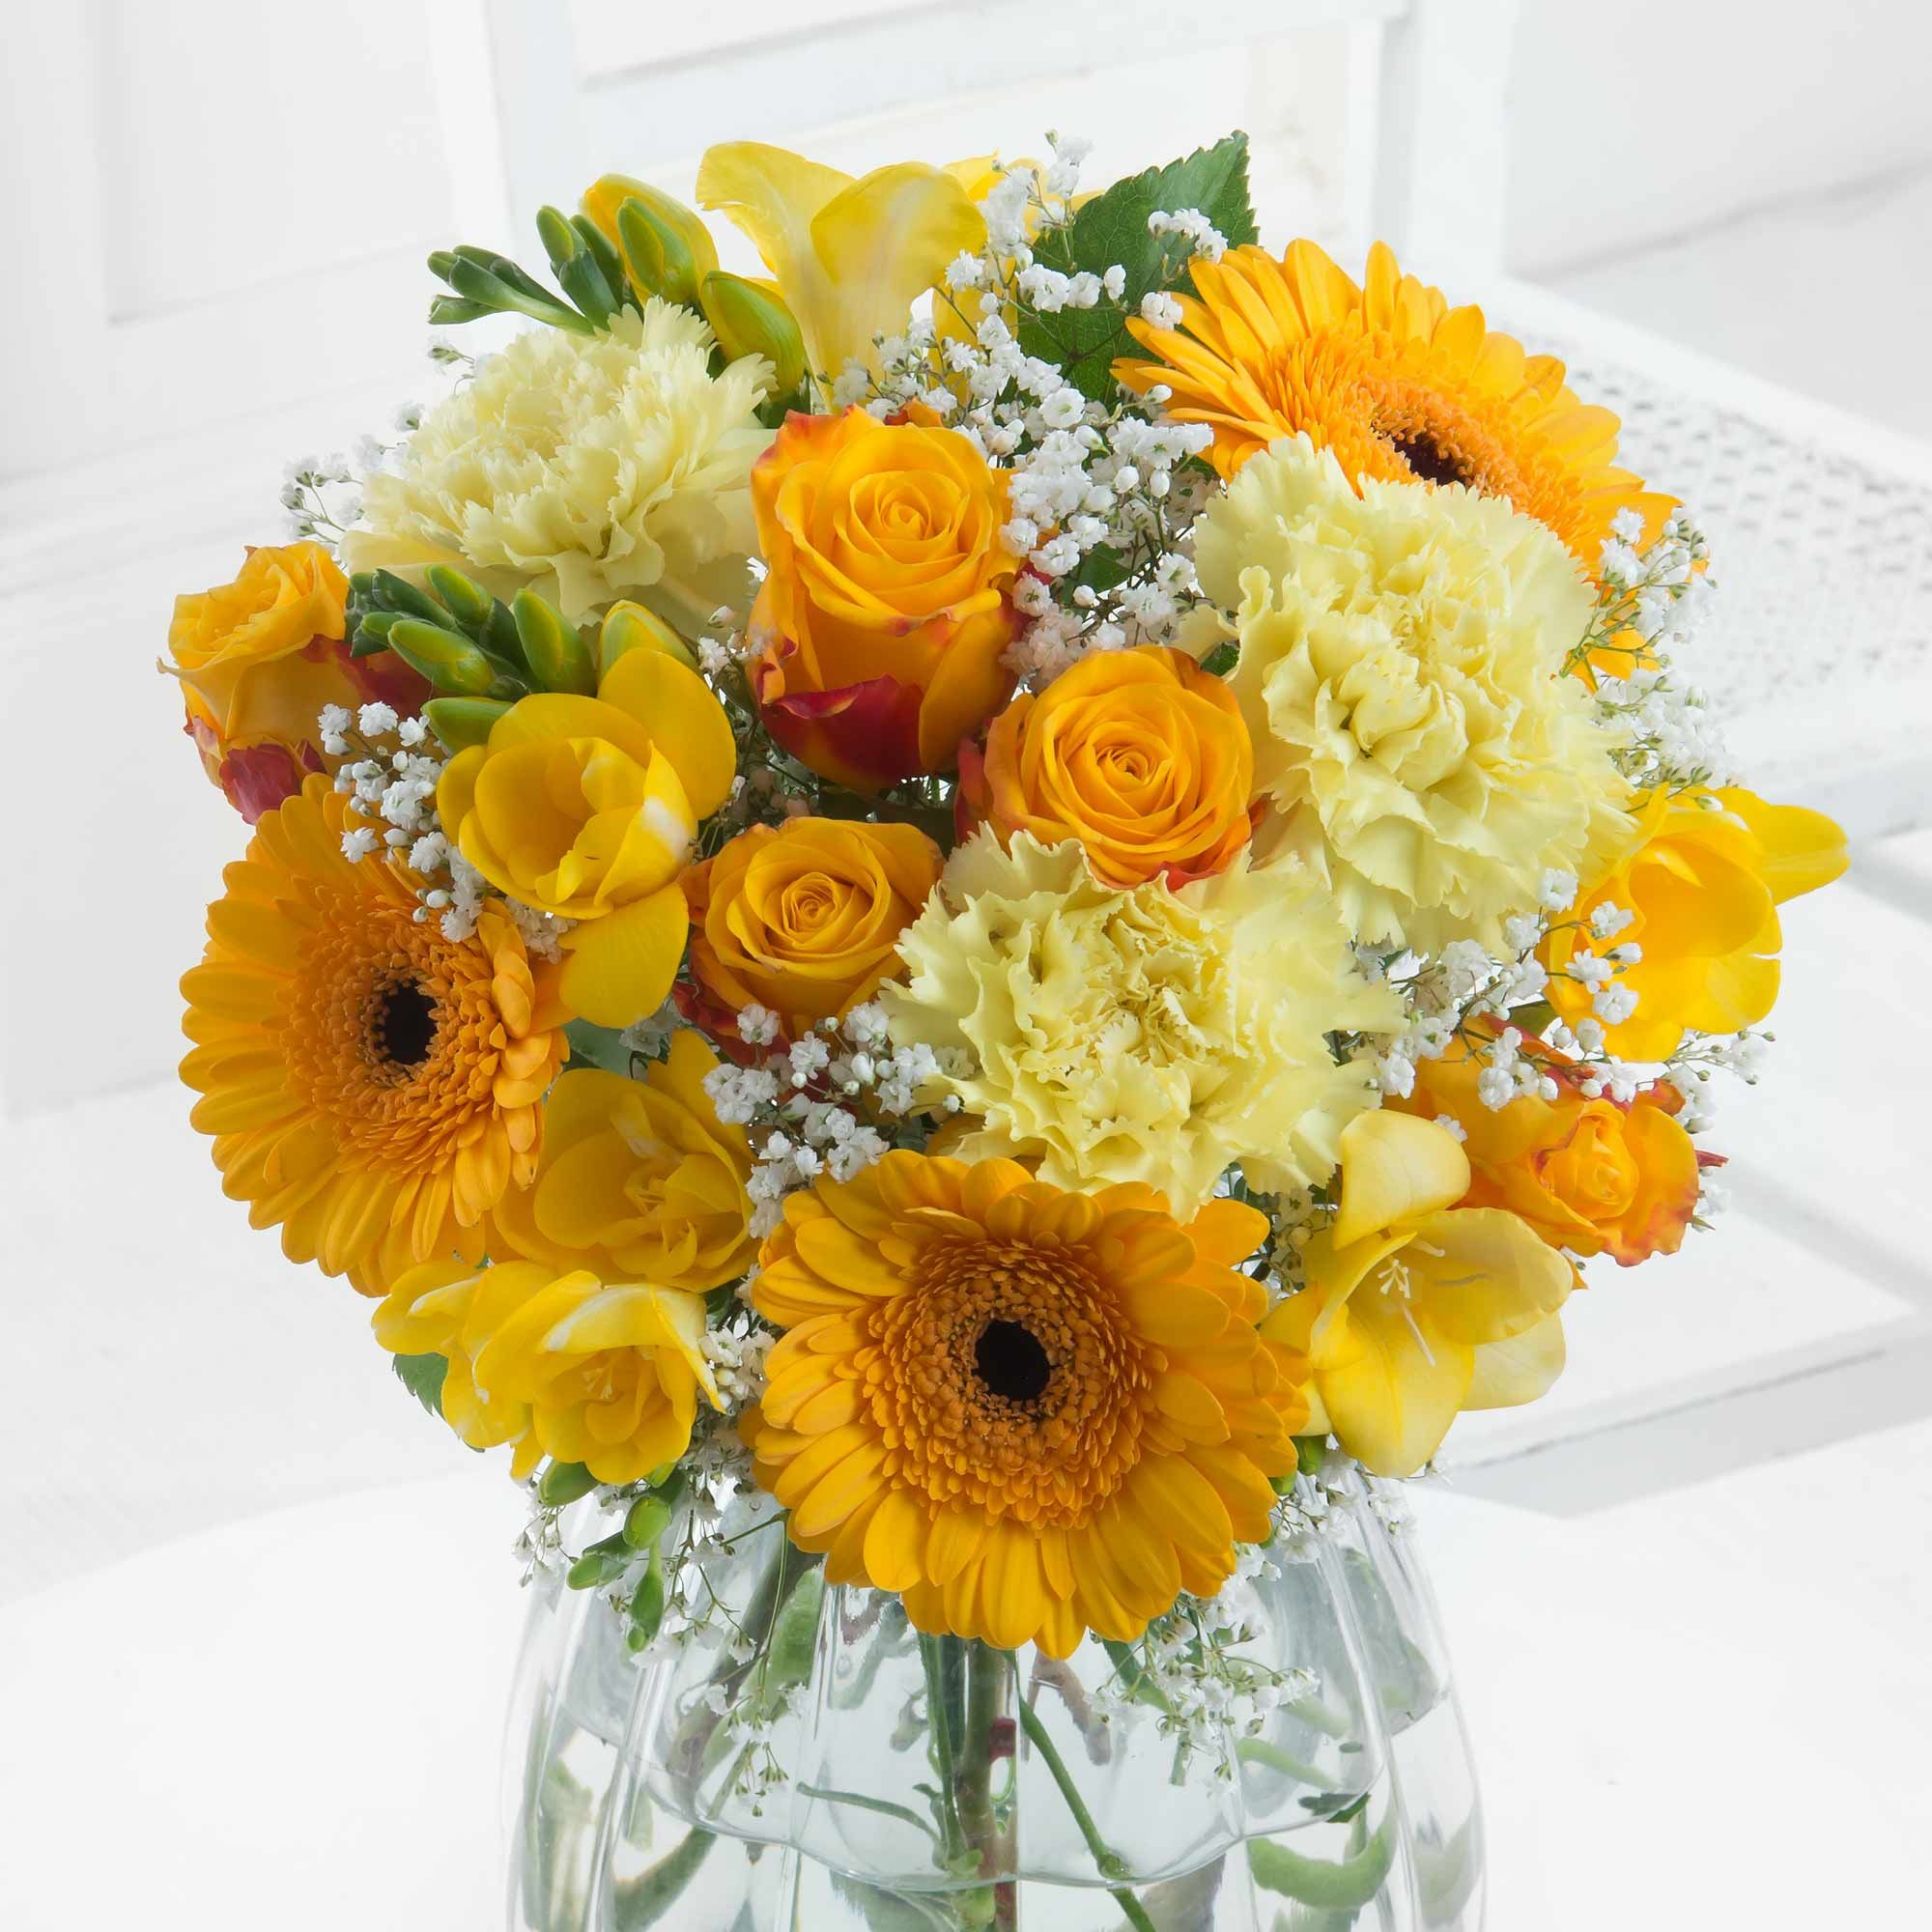 Golden Cheer A Warm And Inviting Bouquet That Will Bring The